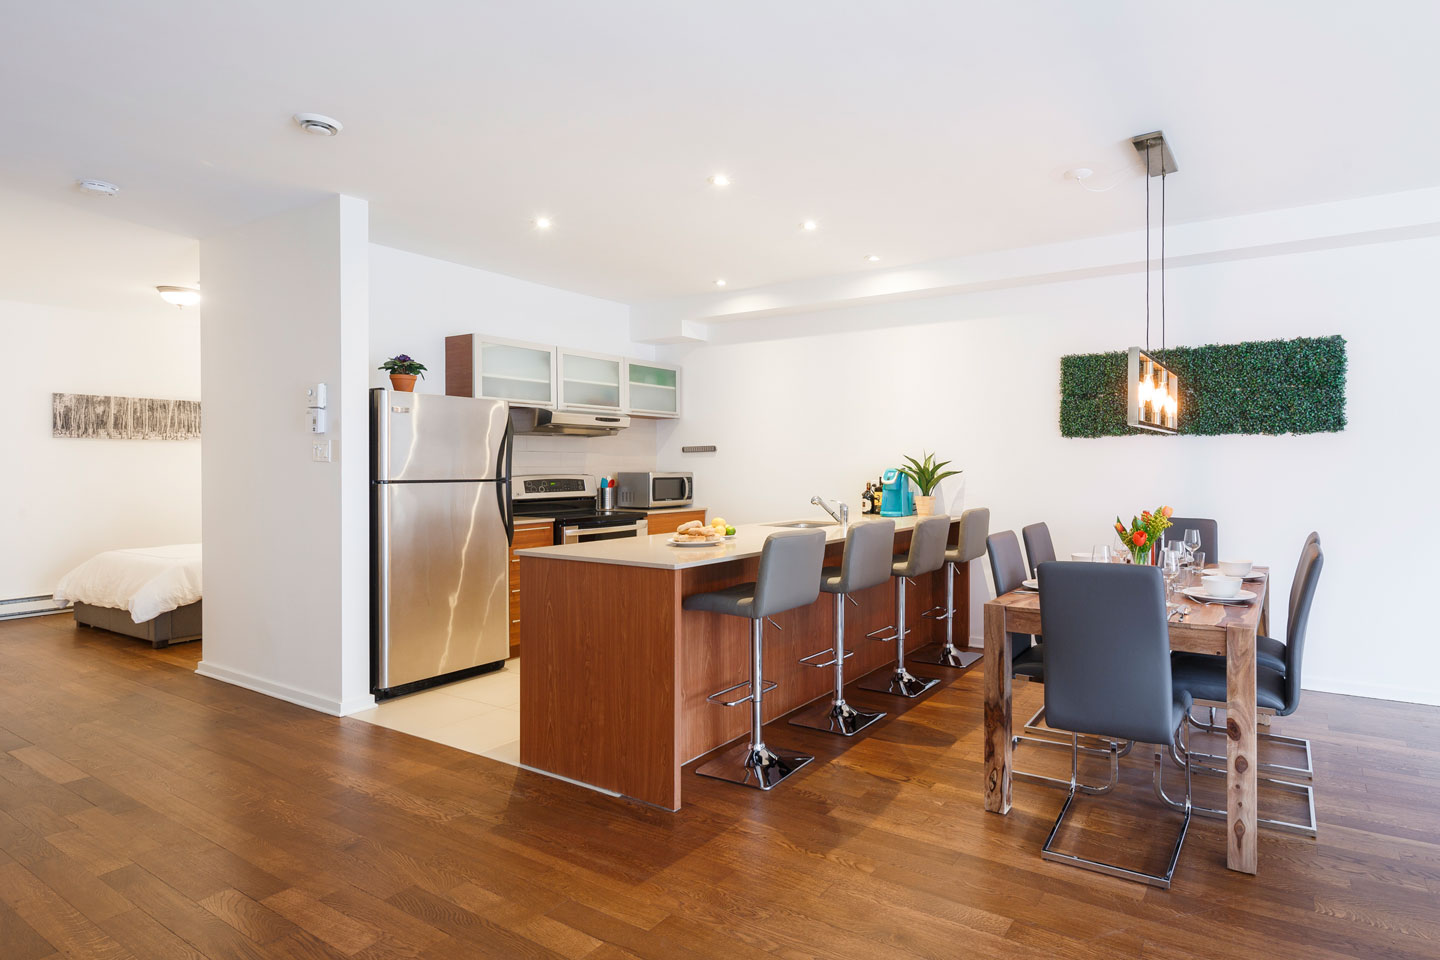 Suite 103: fully equipped kitchen with dishwasher